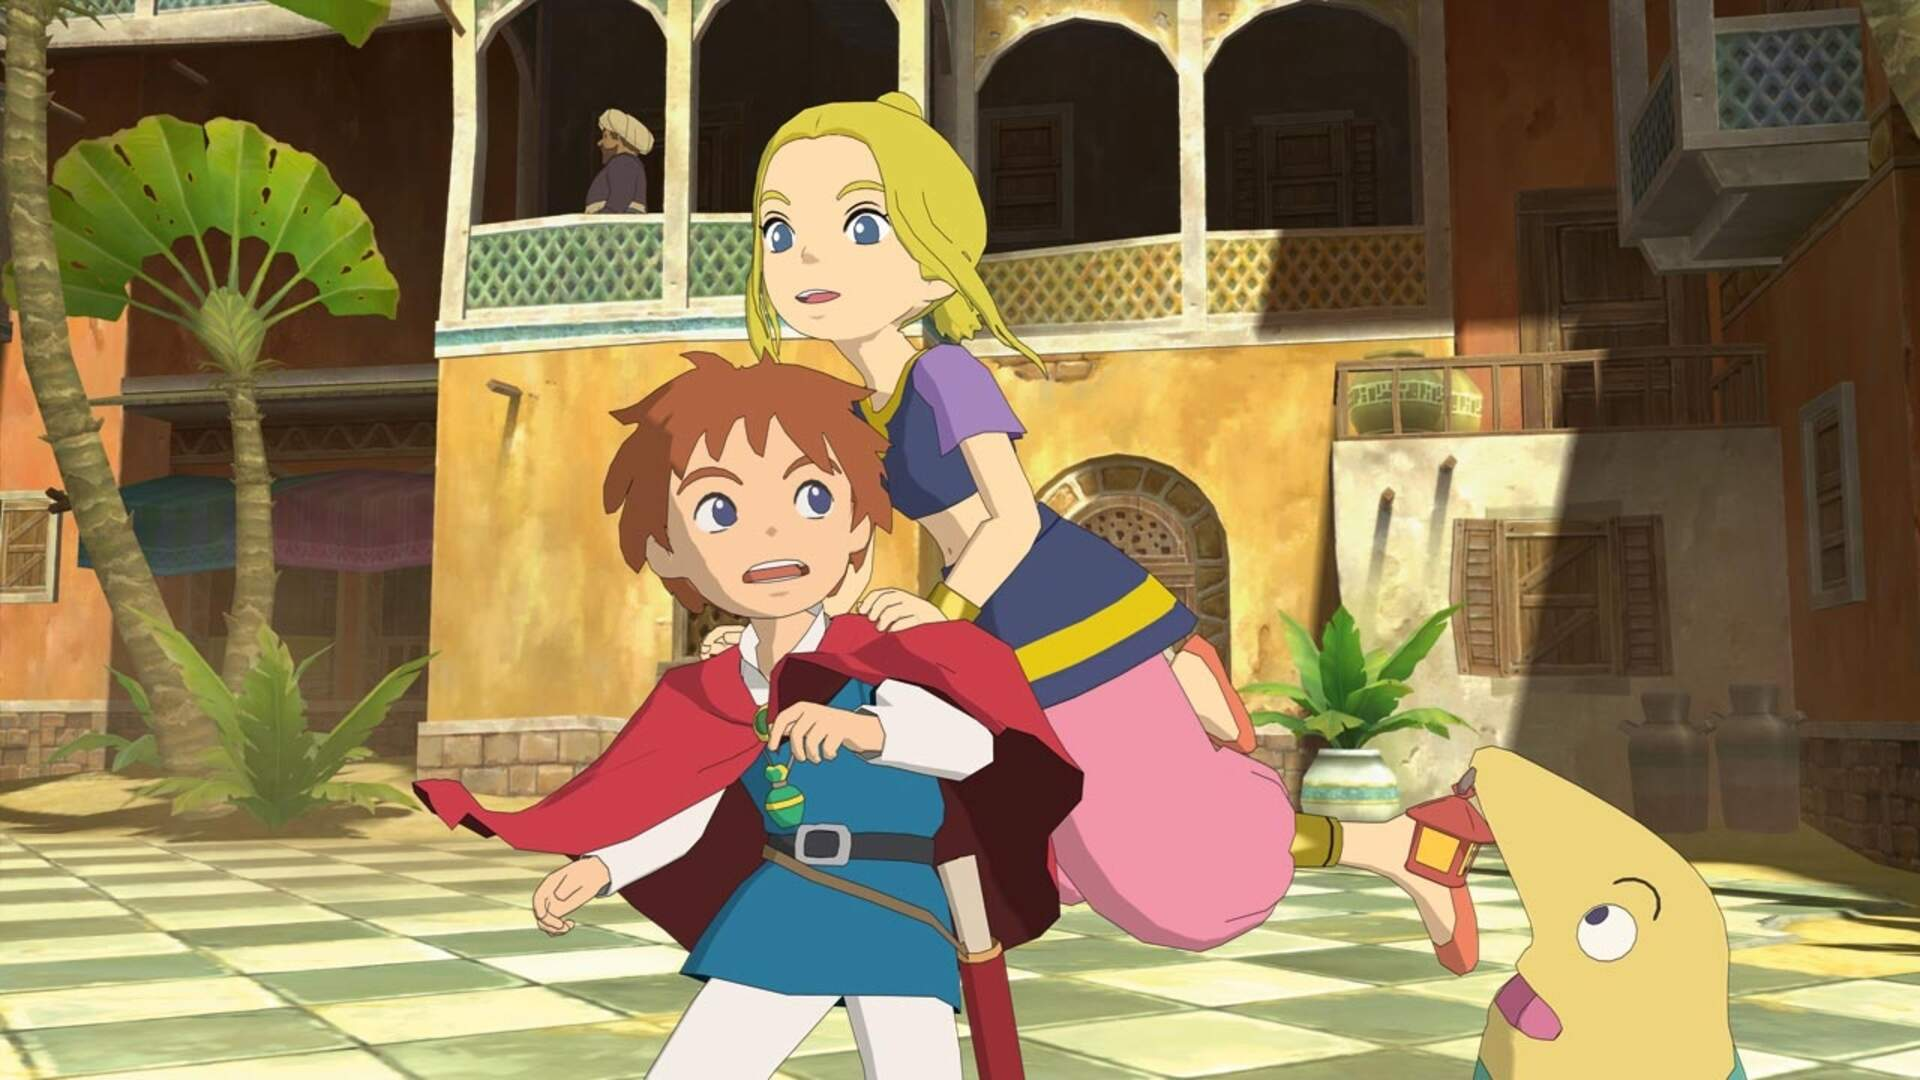 Ni No Kuni Remastered Coming to PS4, Xbox One, and PC According to Yet Another Bandai Namco Leak